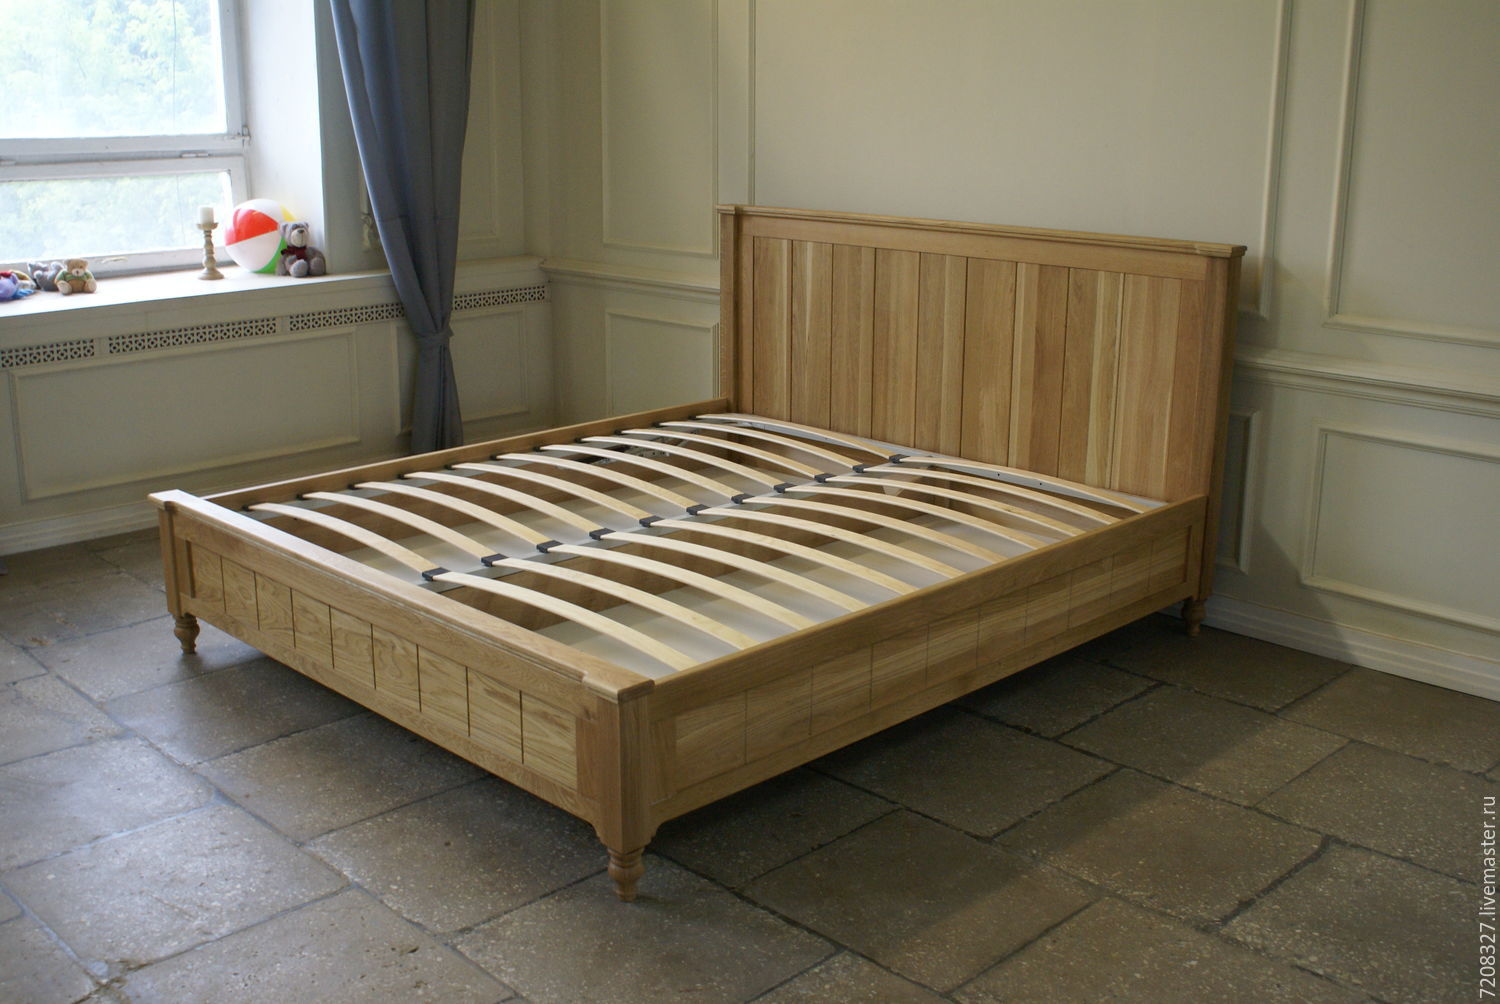 Bed With Lifting Mechanismmade Of Natural Oak Environmentally Friendly Production